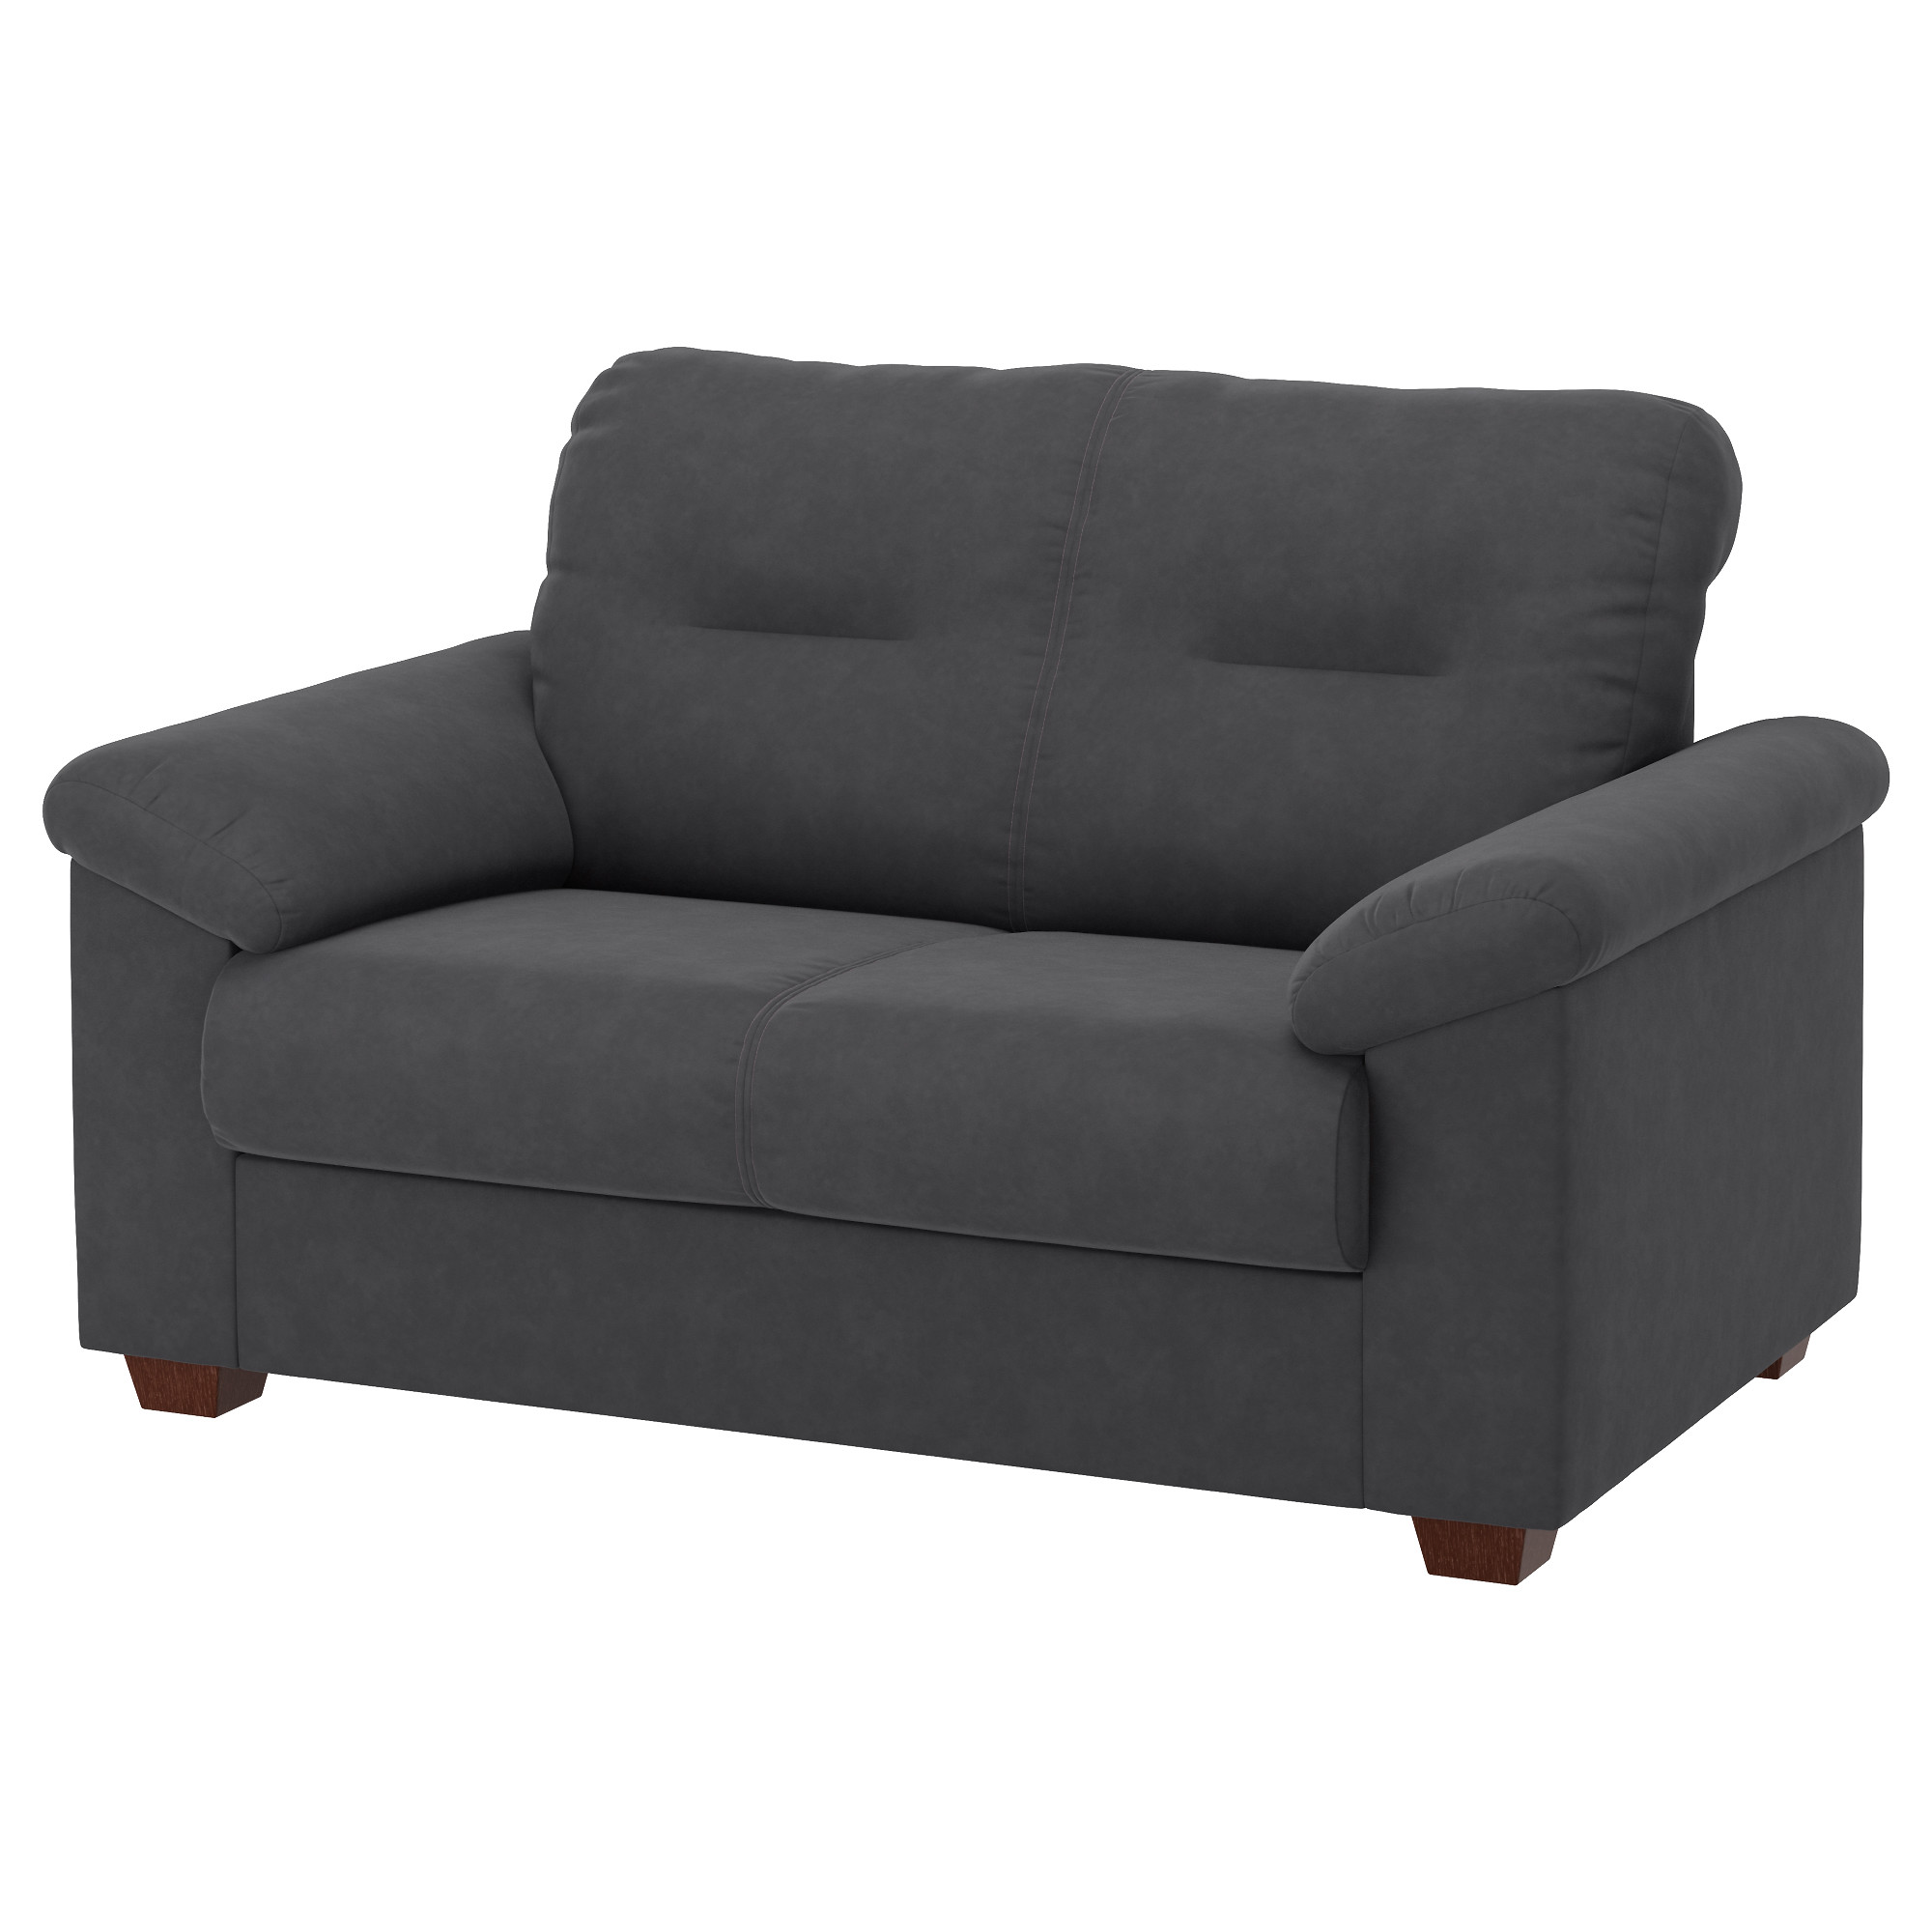 sofas de ikea vilasund sofa bed with chaise longue